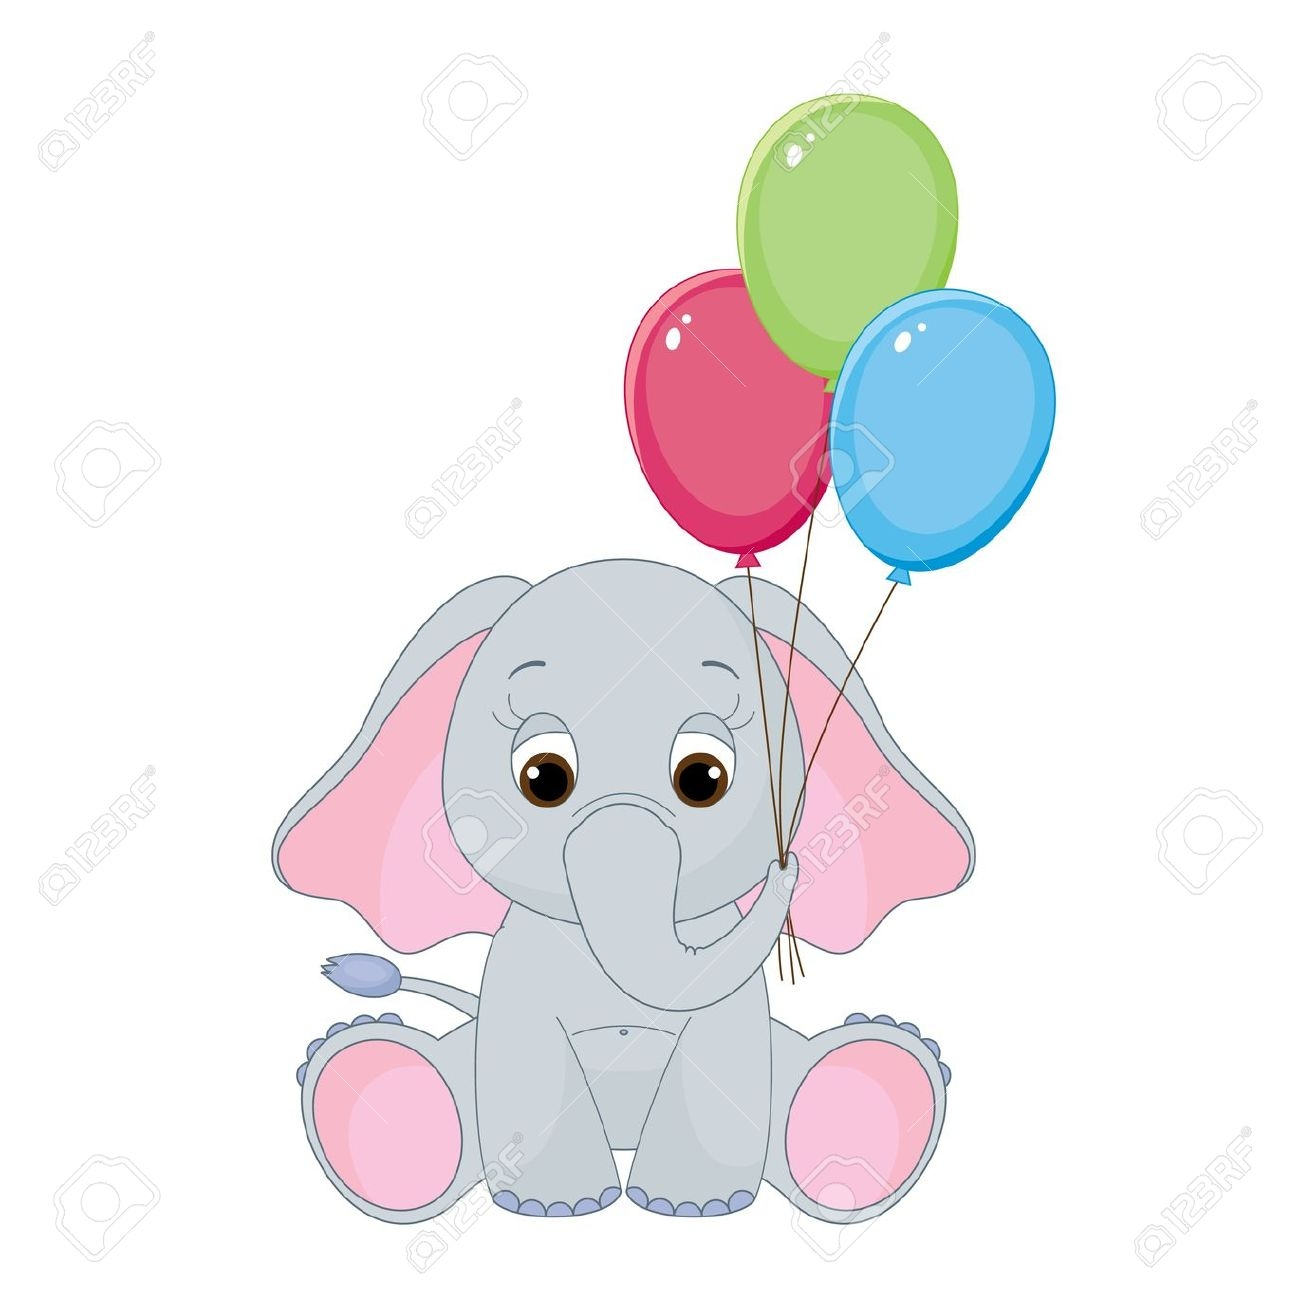 Cute Baby Elephant Clipart